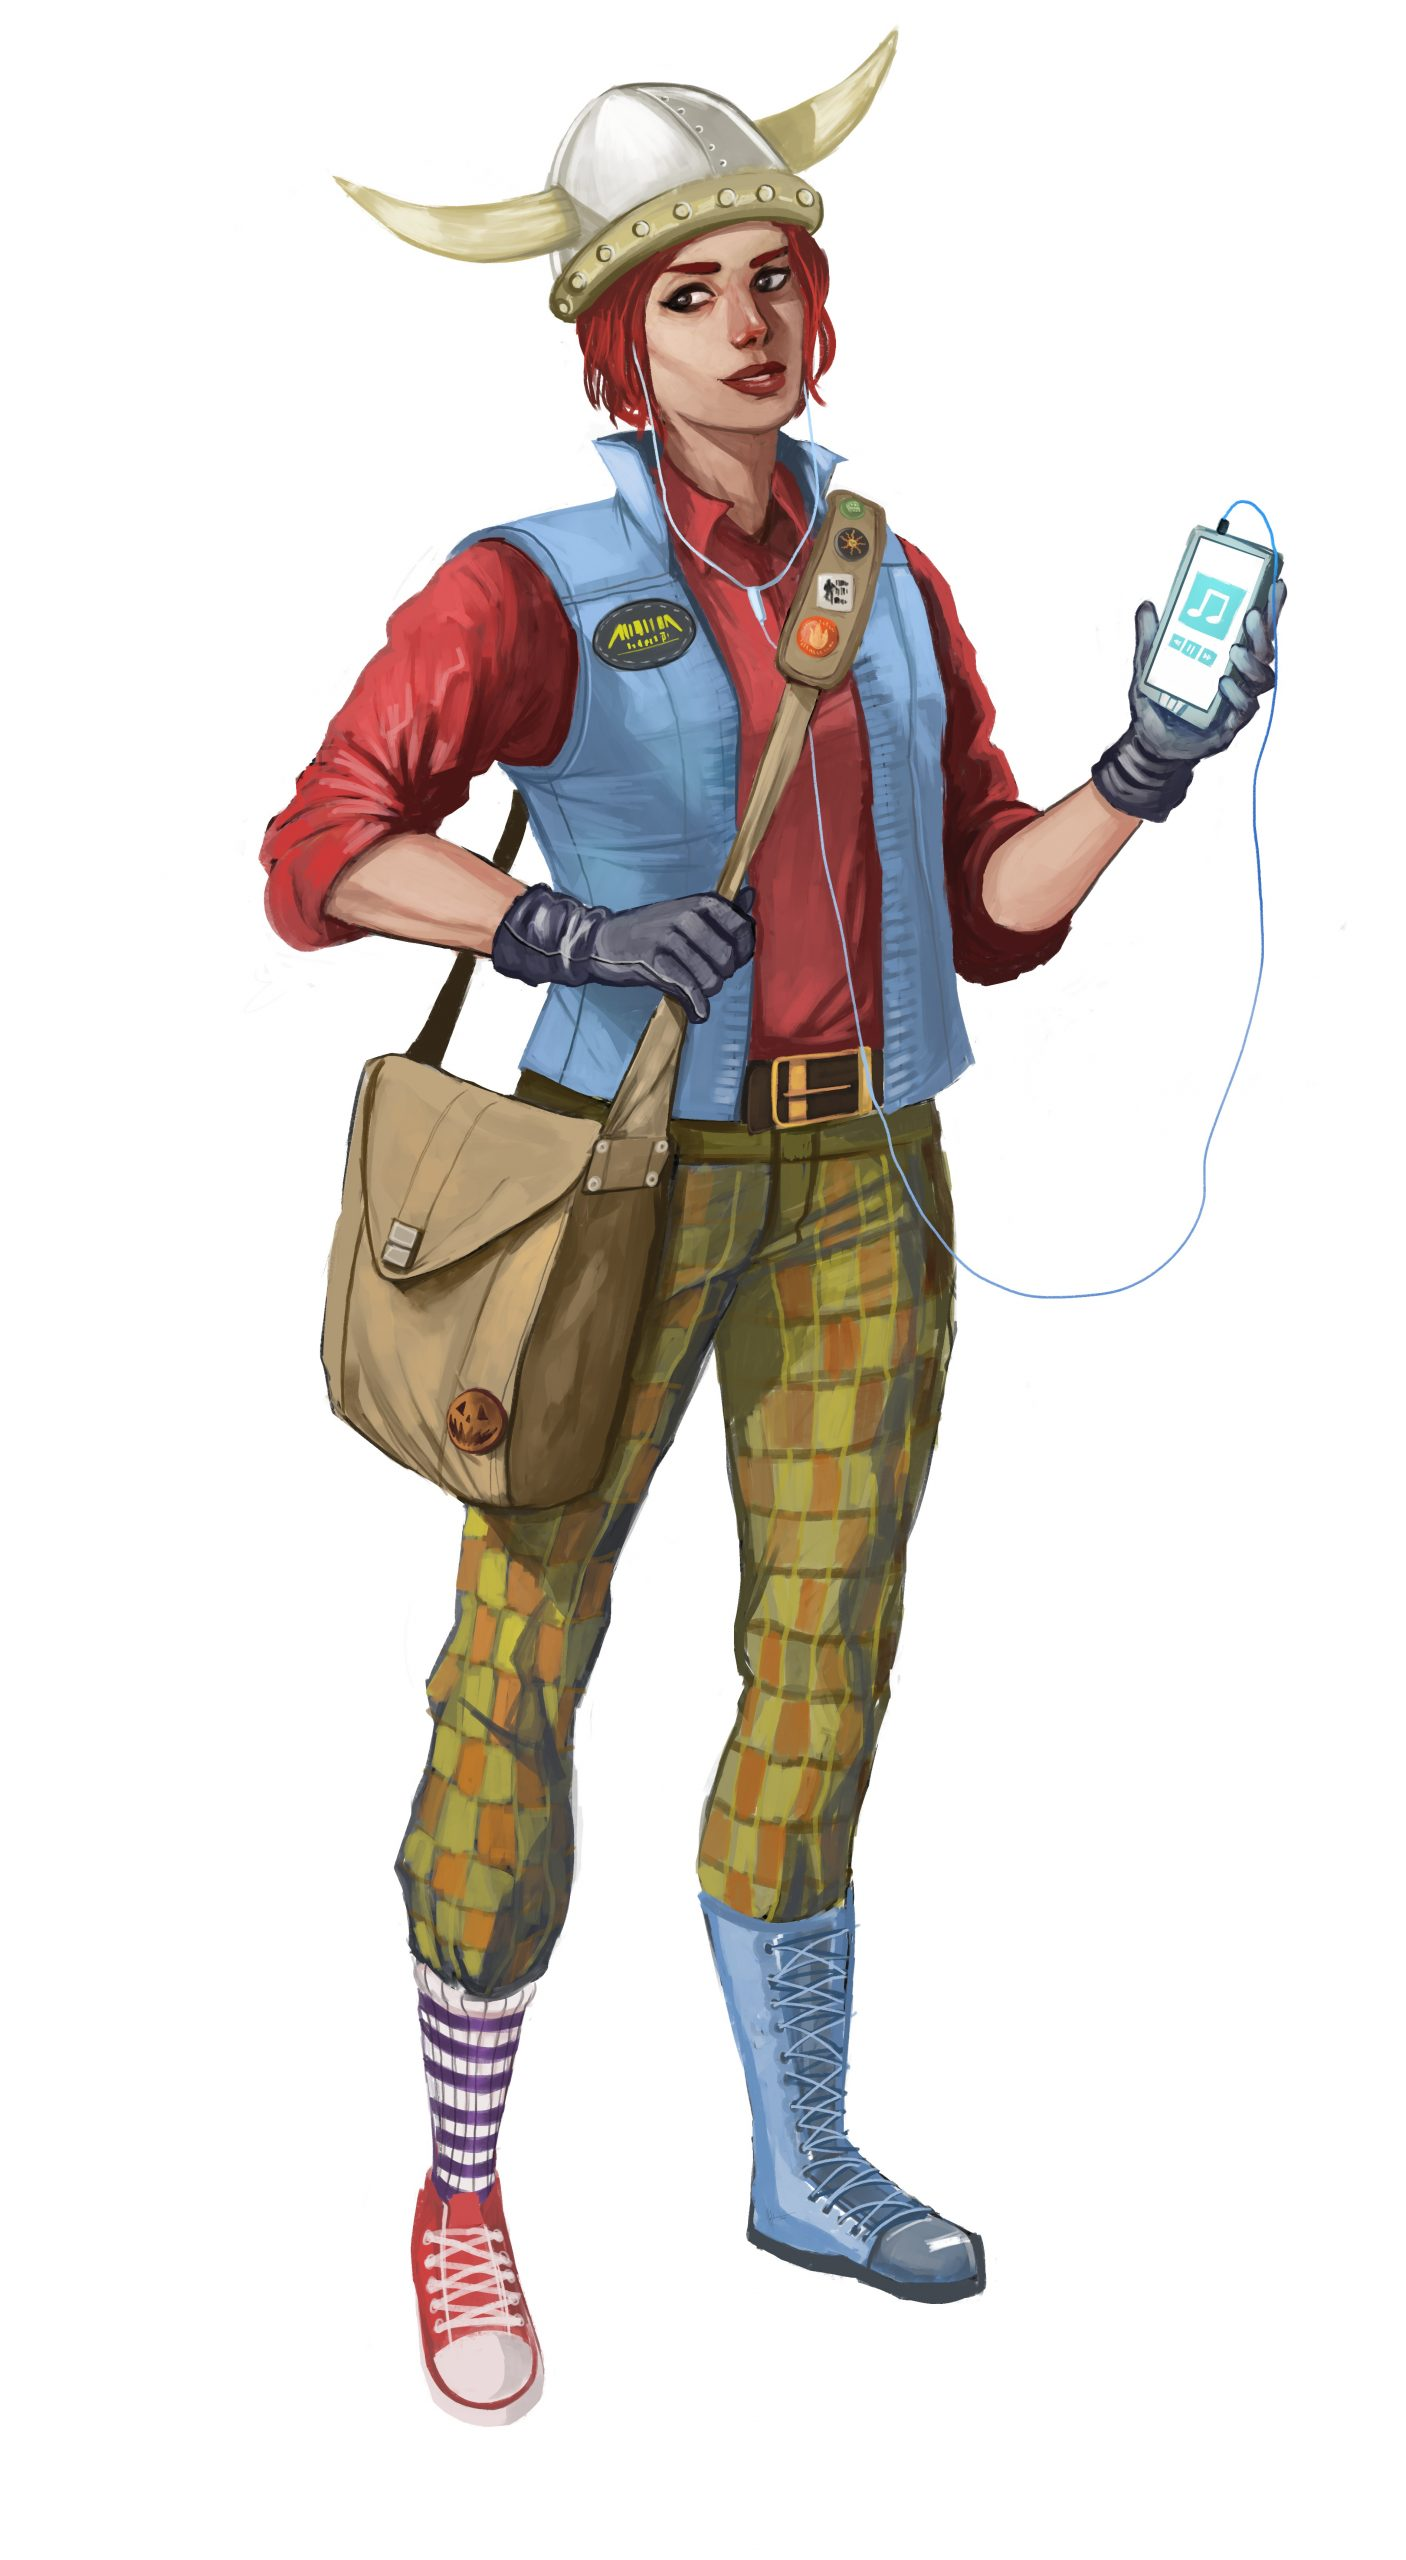 a woman wearing a hat with horns, blue vest, red button up shirt, bag across her body, green and orange checkered pants, one blue boot, one red shoe and white and purple sock.